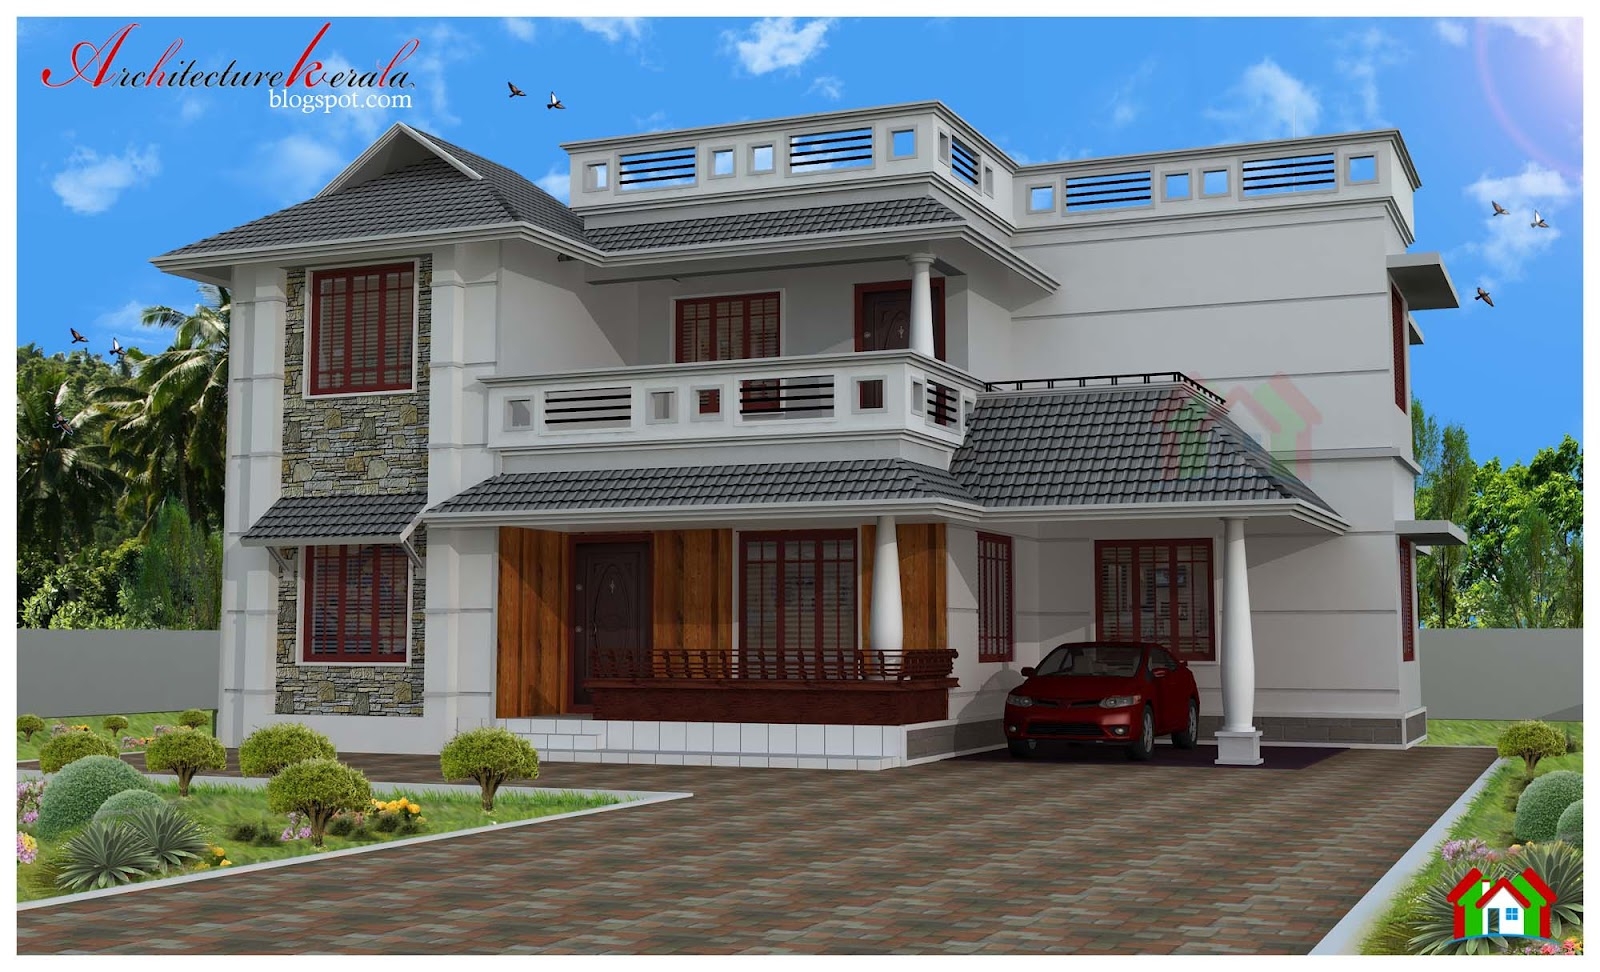 Architecture kerala four bed room house plan for Home pland